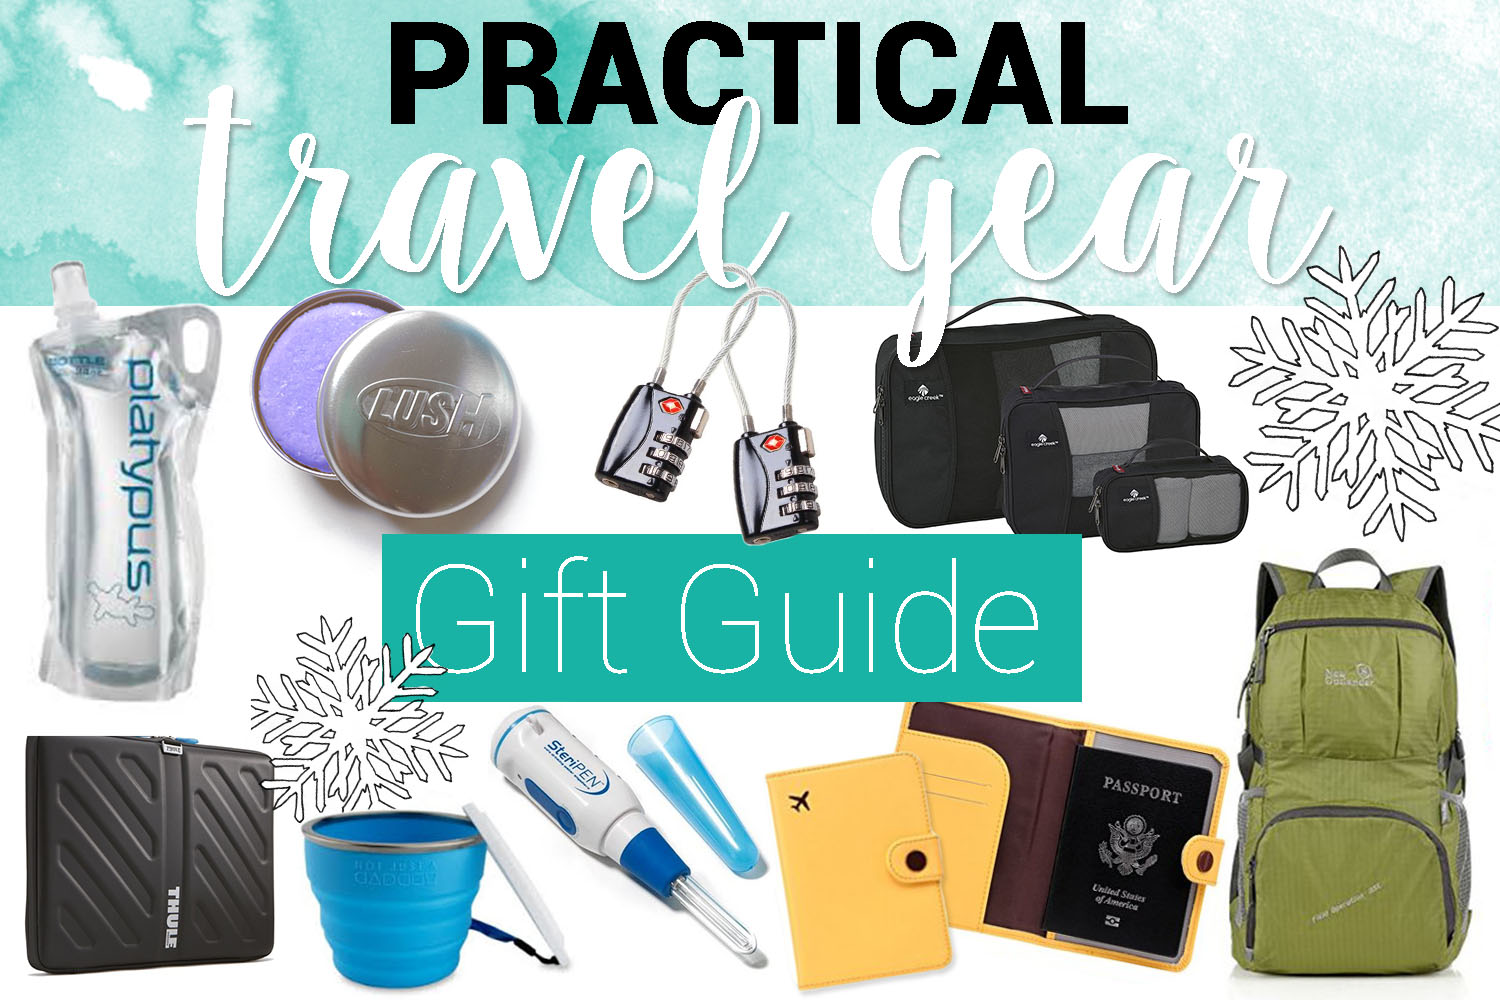 Practical Travel Gear Gift Guide